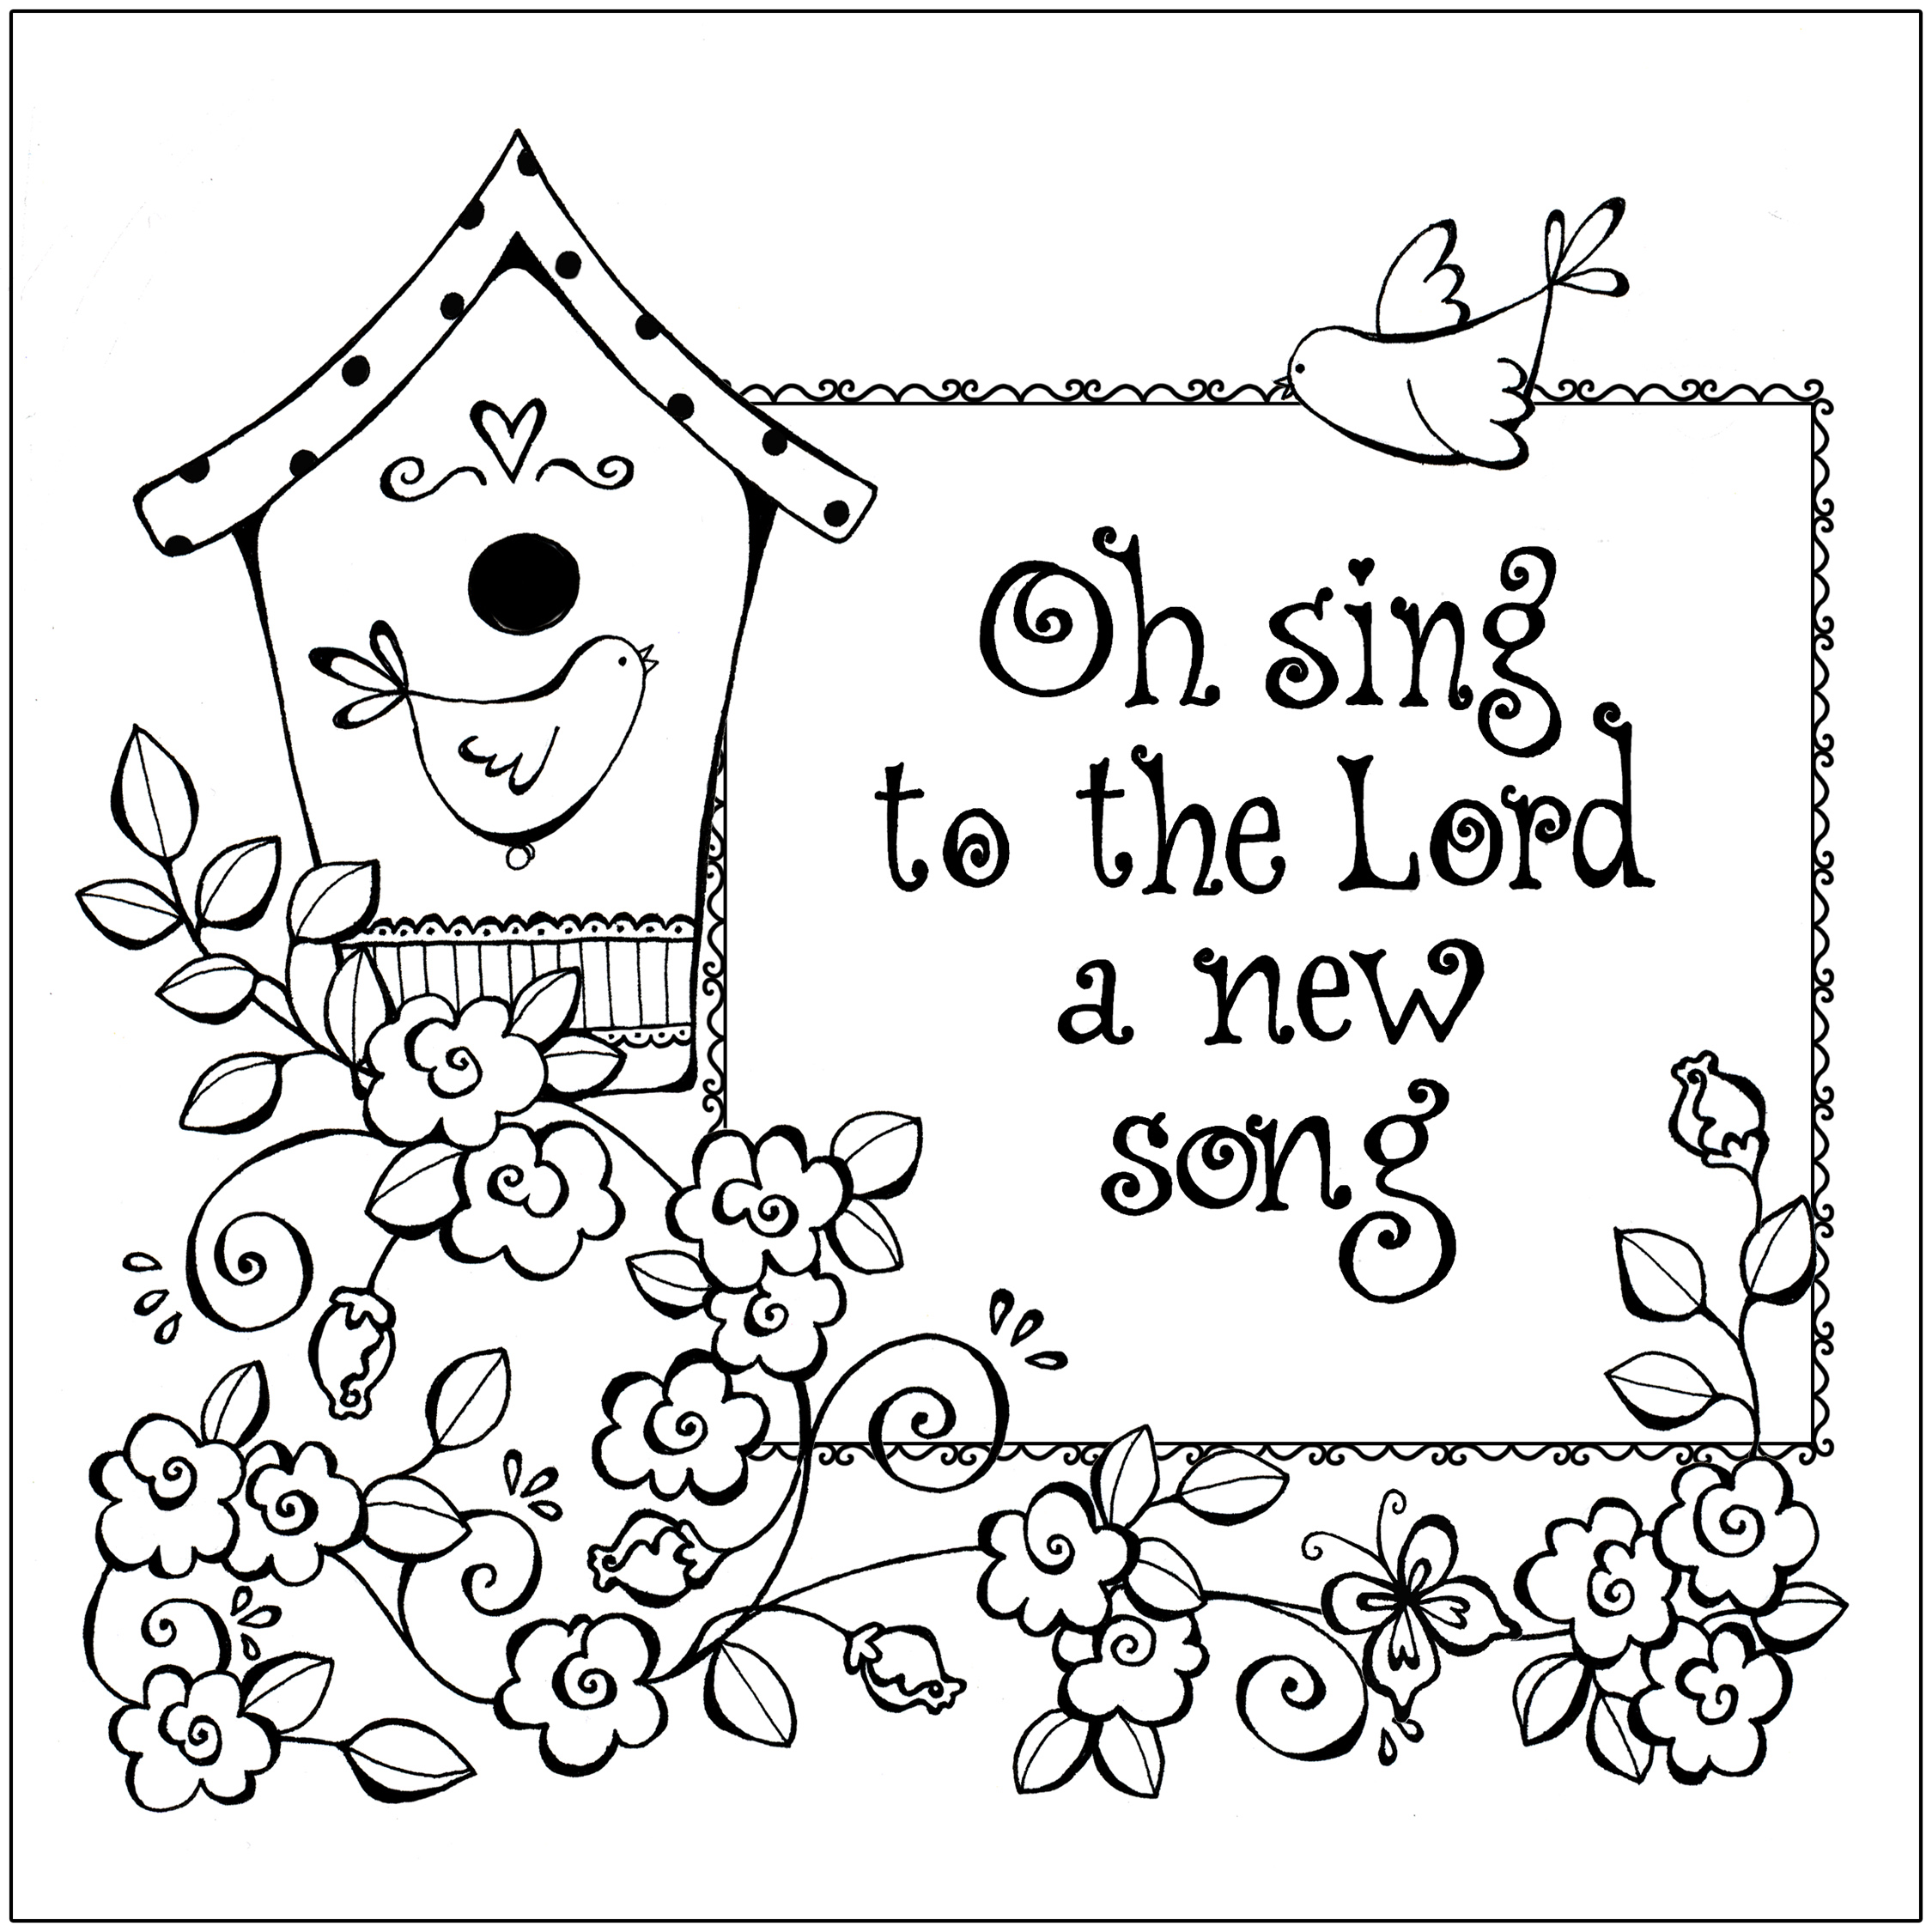 Free printable christian coloring pages for kids best for Free religious coloring pages